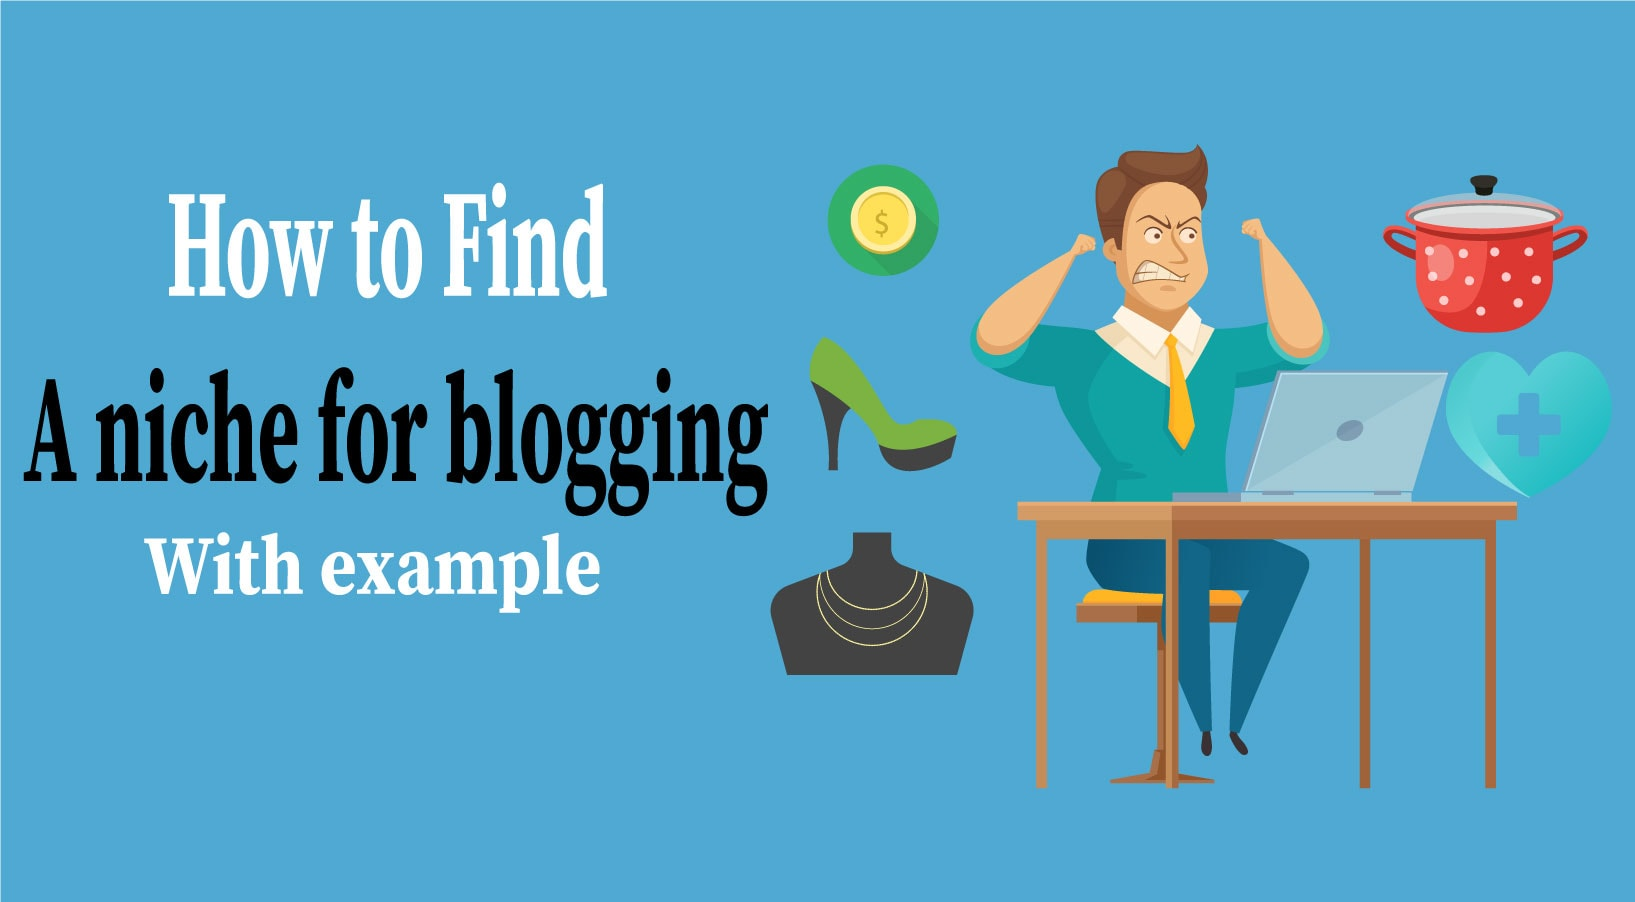 how to find niche for blogging